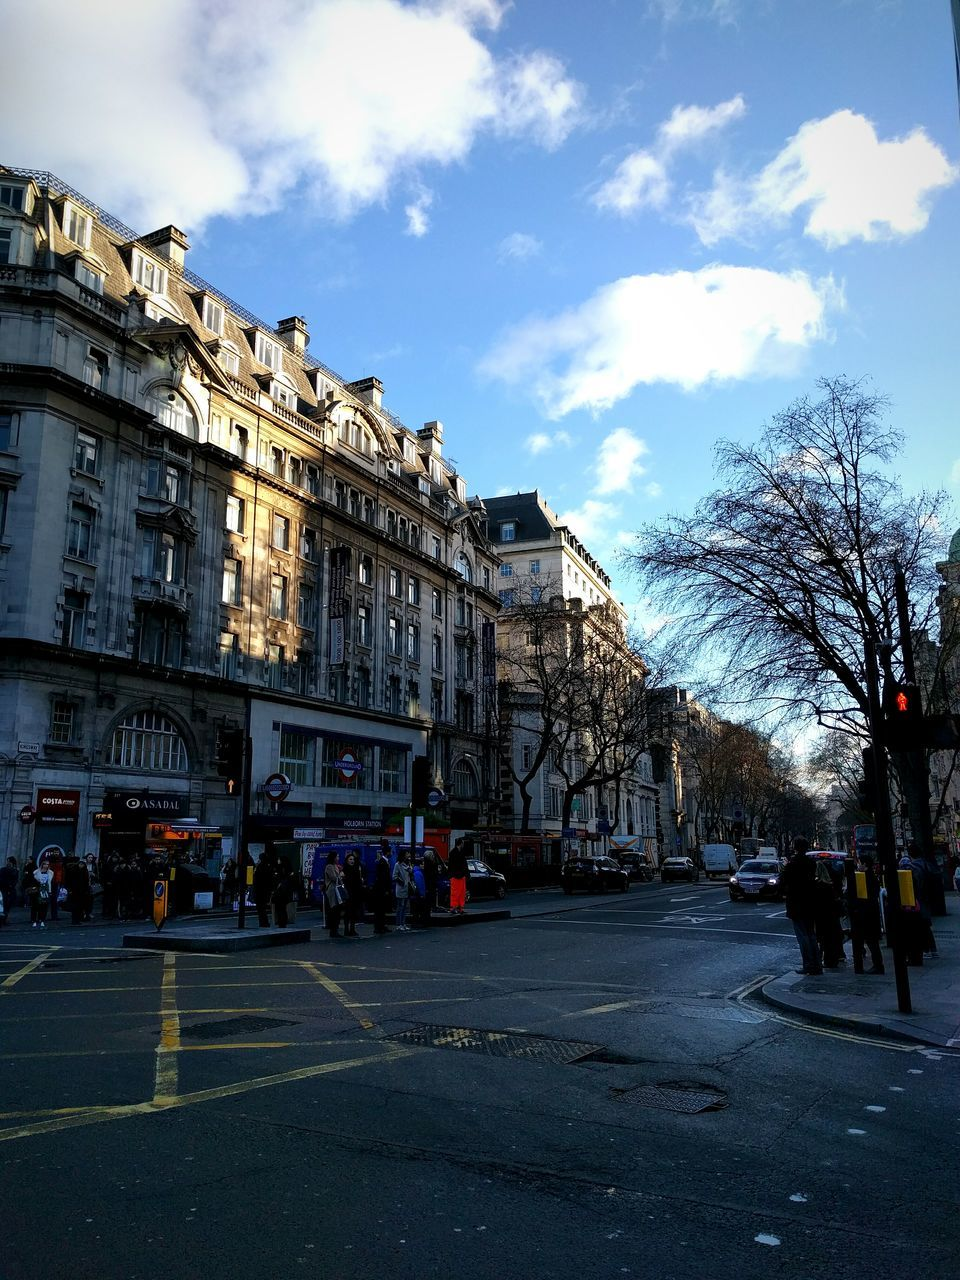 building exterior, architecture, built structure, sky, cloud - sky, street, outdoors, day, road, bare tree, travel destinations, city, large group of people, real people, tree, people